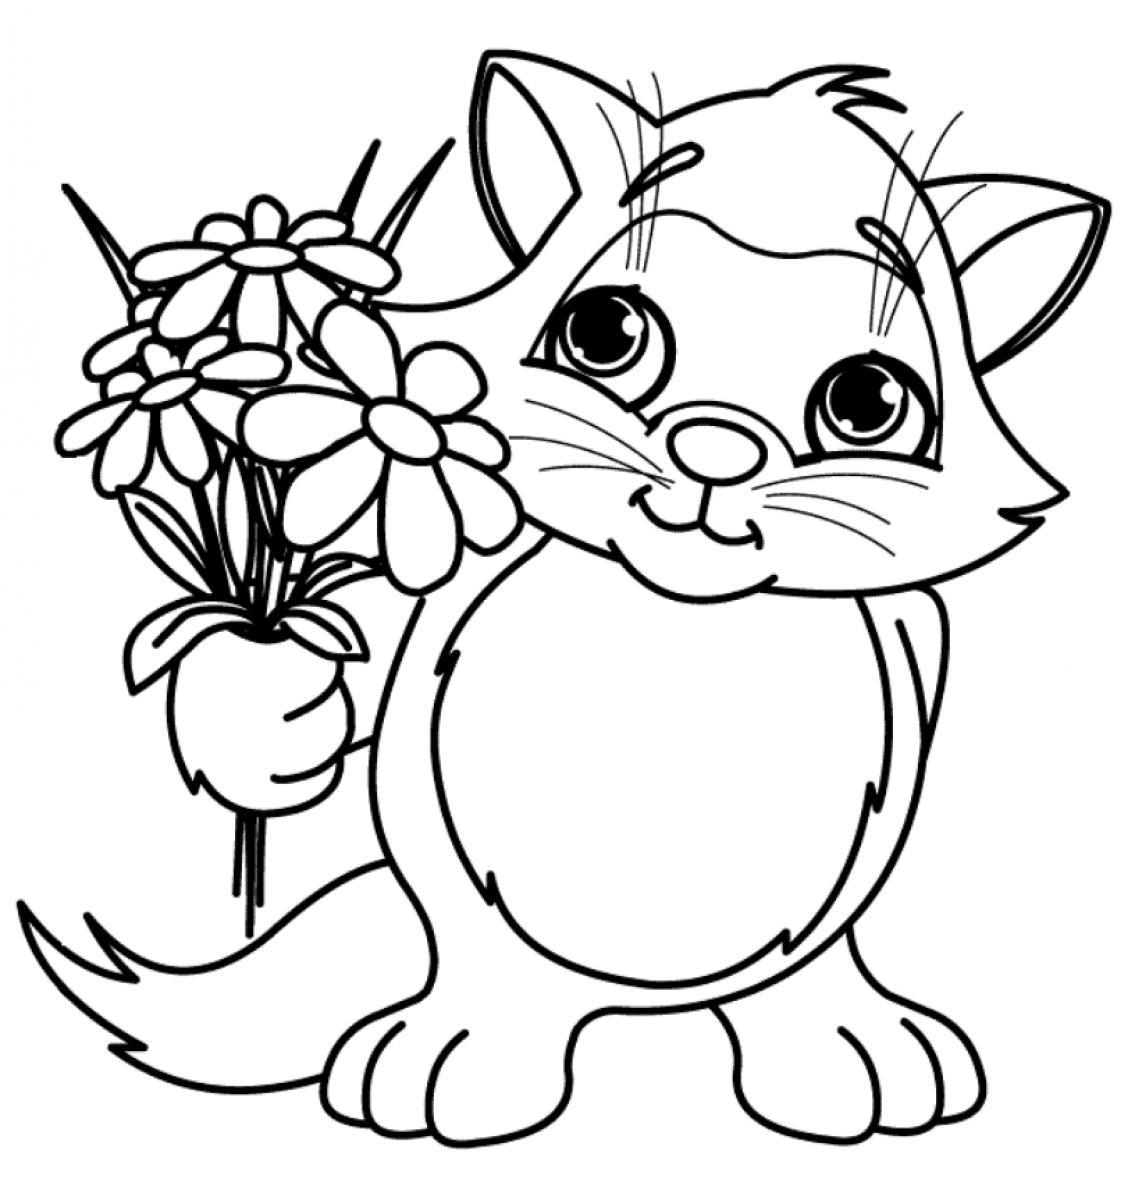 colouring page of flowers beautiful printable flowers coloring pages of flowers page colouring